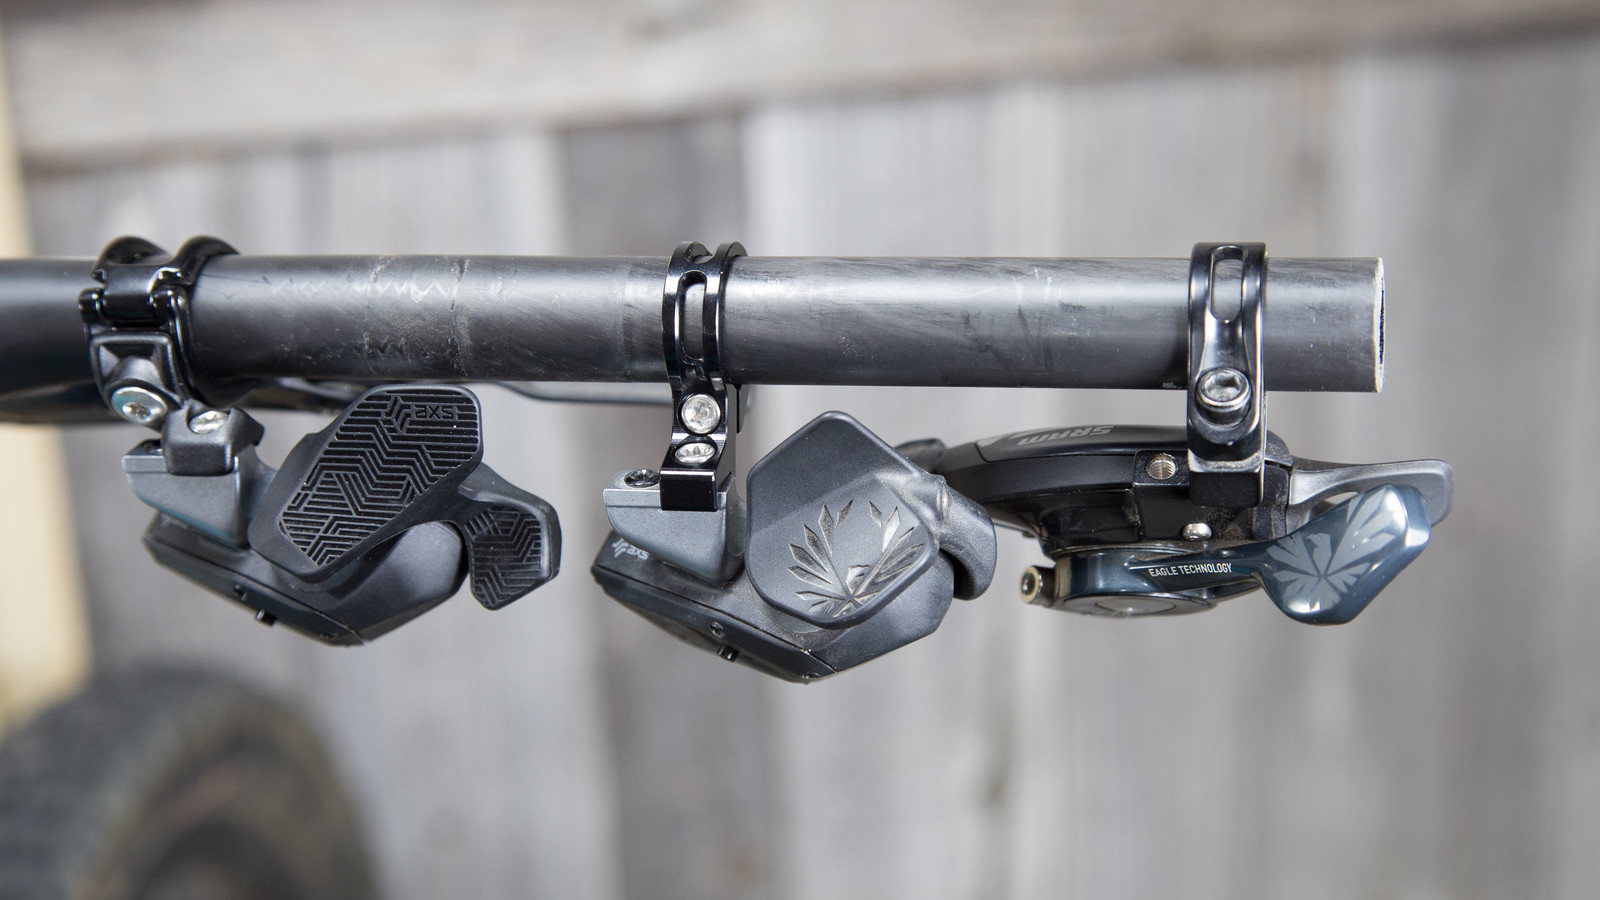 Left-to-right: AXS controller with new rocker, AXS controlller with original rocker and Discrete Clamp, SRAM X01 cable-actuated shifter.